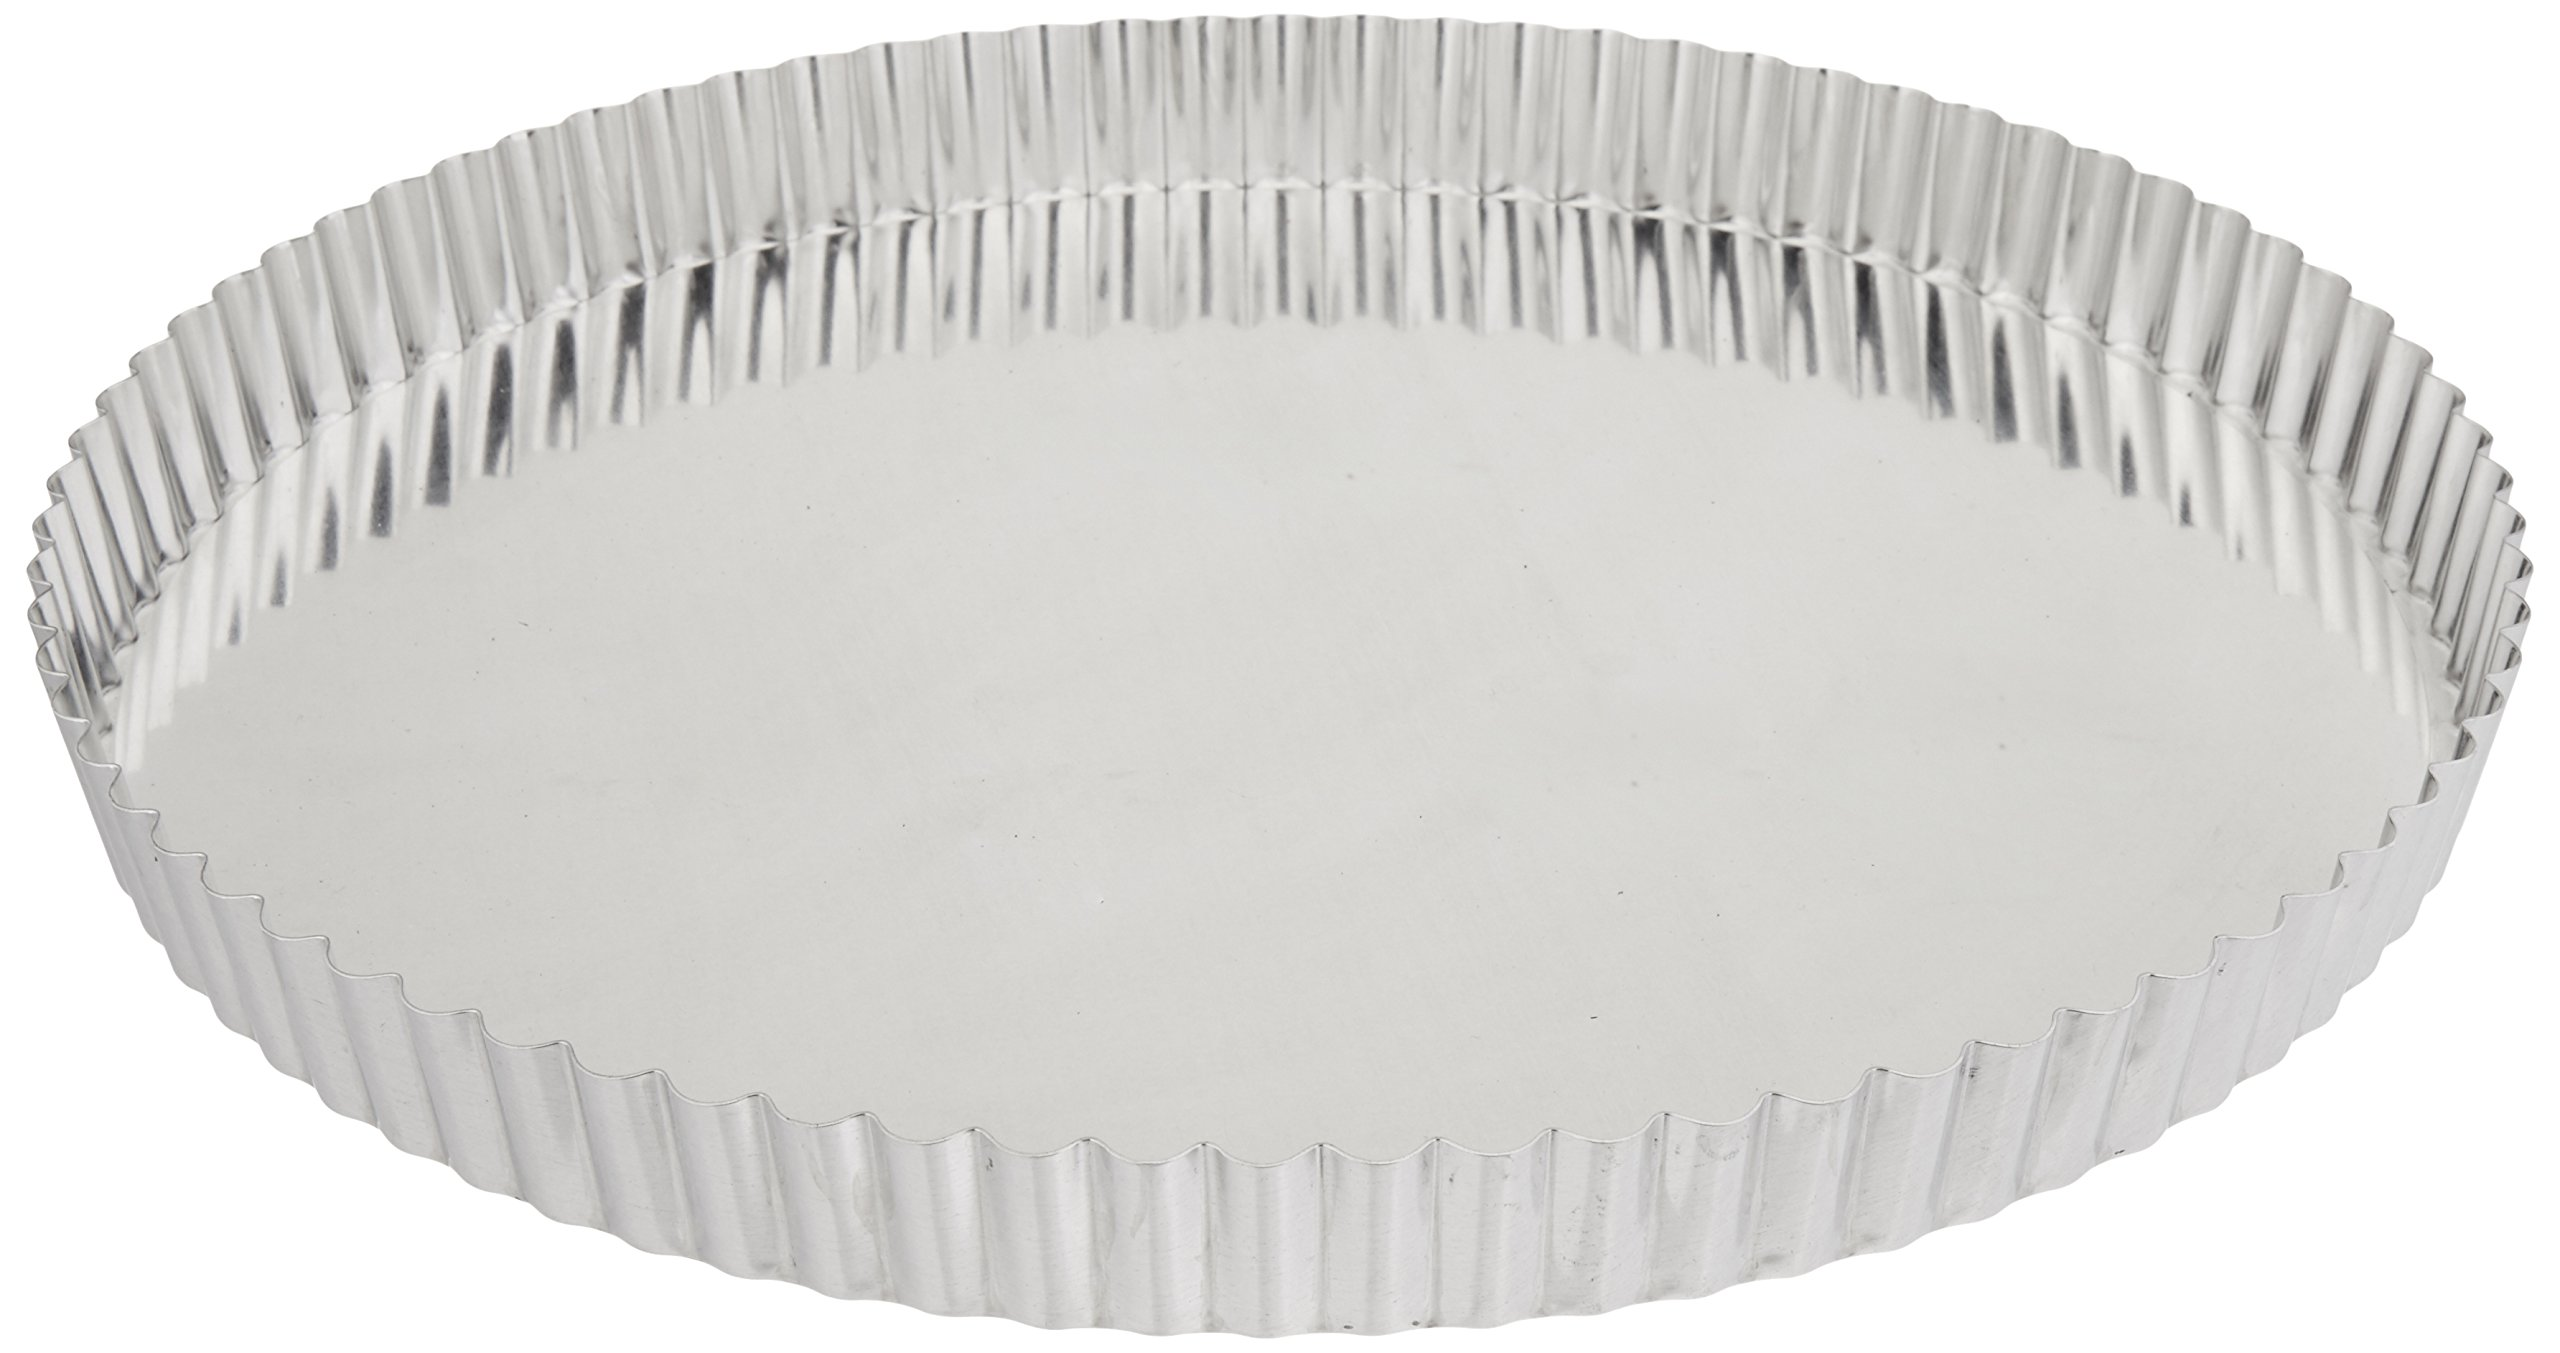 Paderno World Cuisine 12.5 Inch Fluted Non-Stick Tart Mold with Removable Bottom